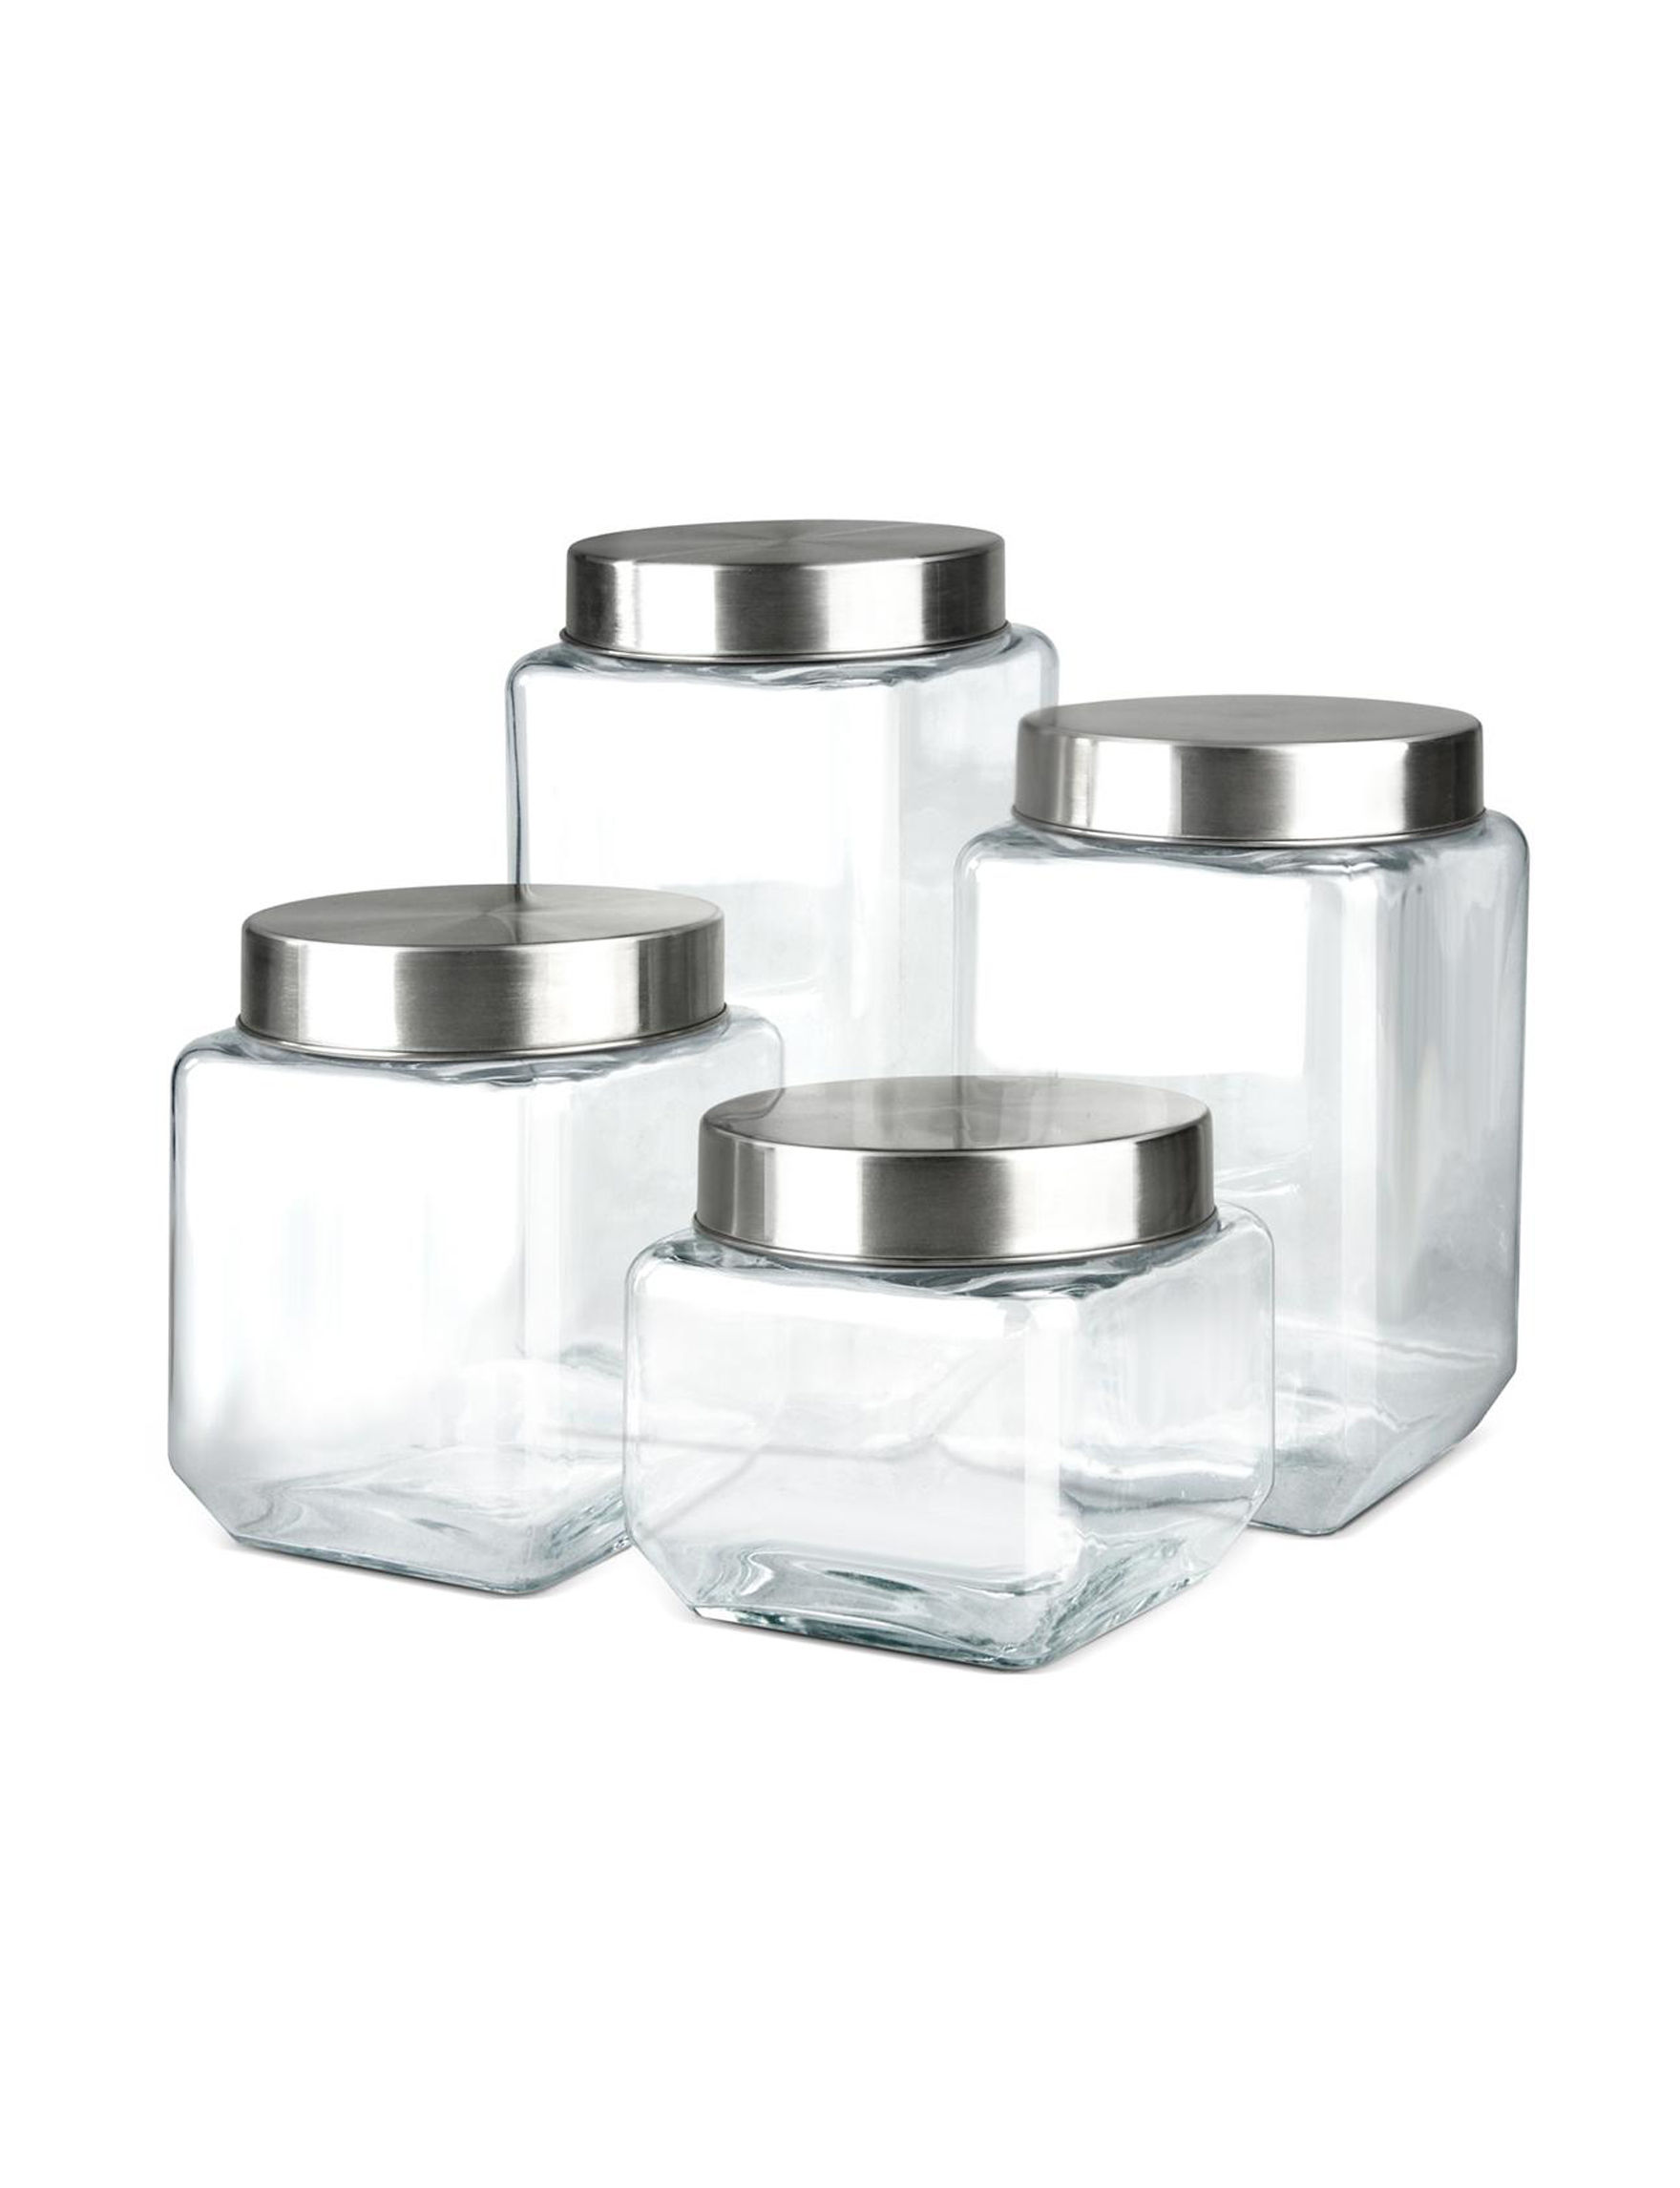 Farberware Silver Food Storage Kitchen Storage & Organization